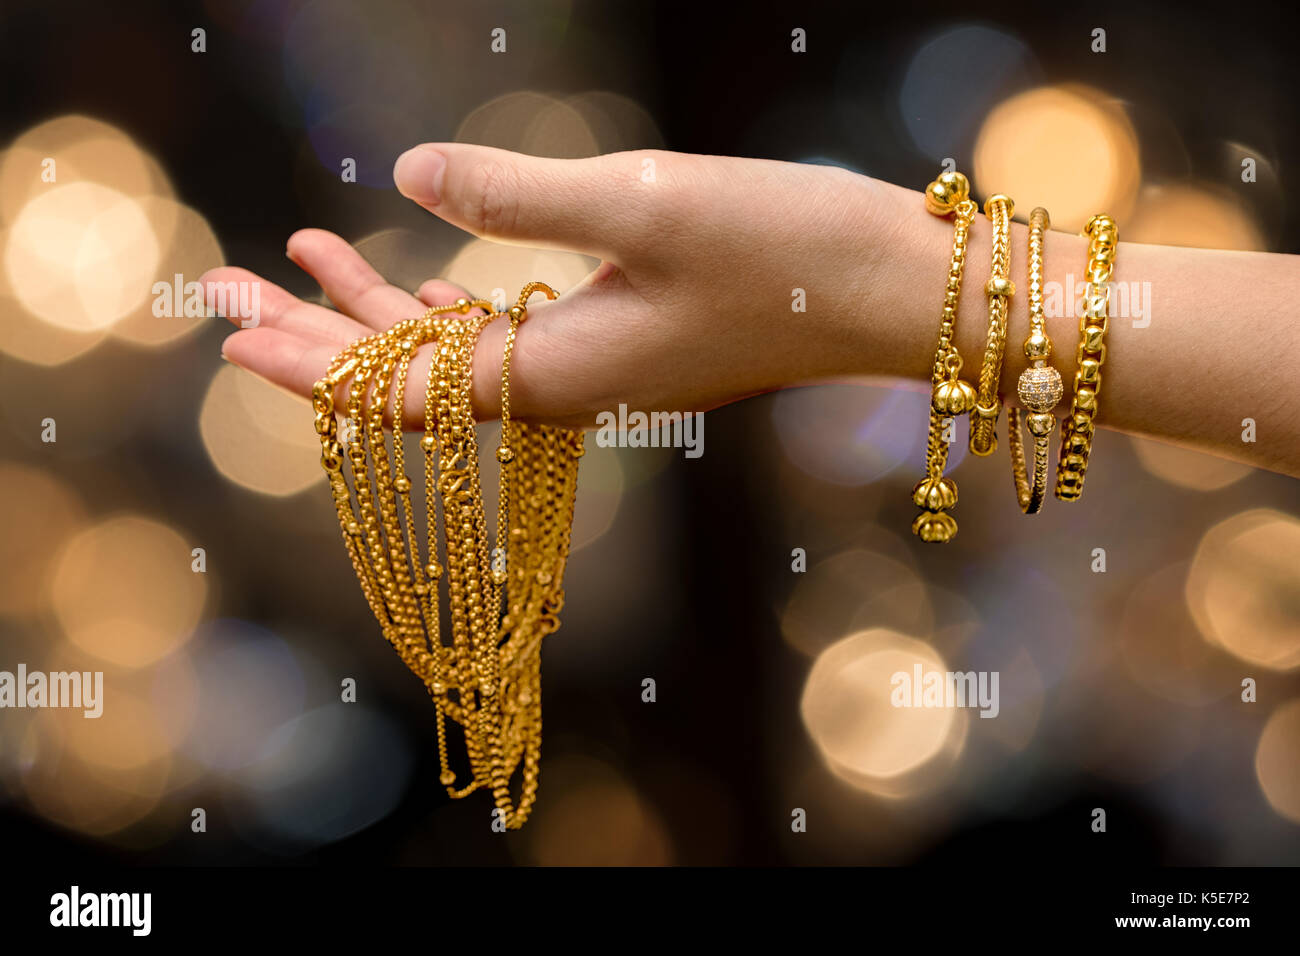 design velvet shiny show image for stock red gold free style jewelry royalty at woman photo bracelet thai tray shutterstock creative chains on